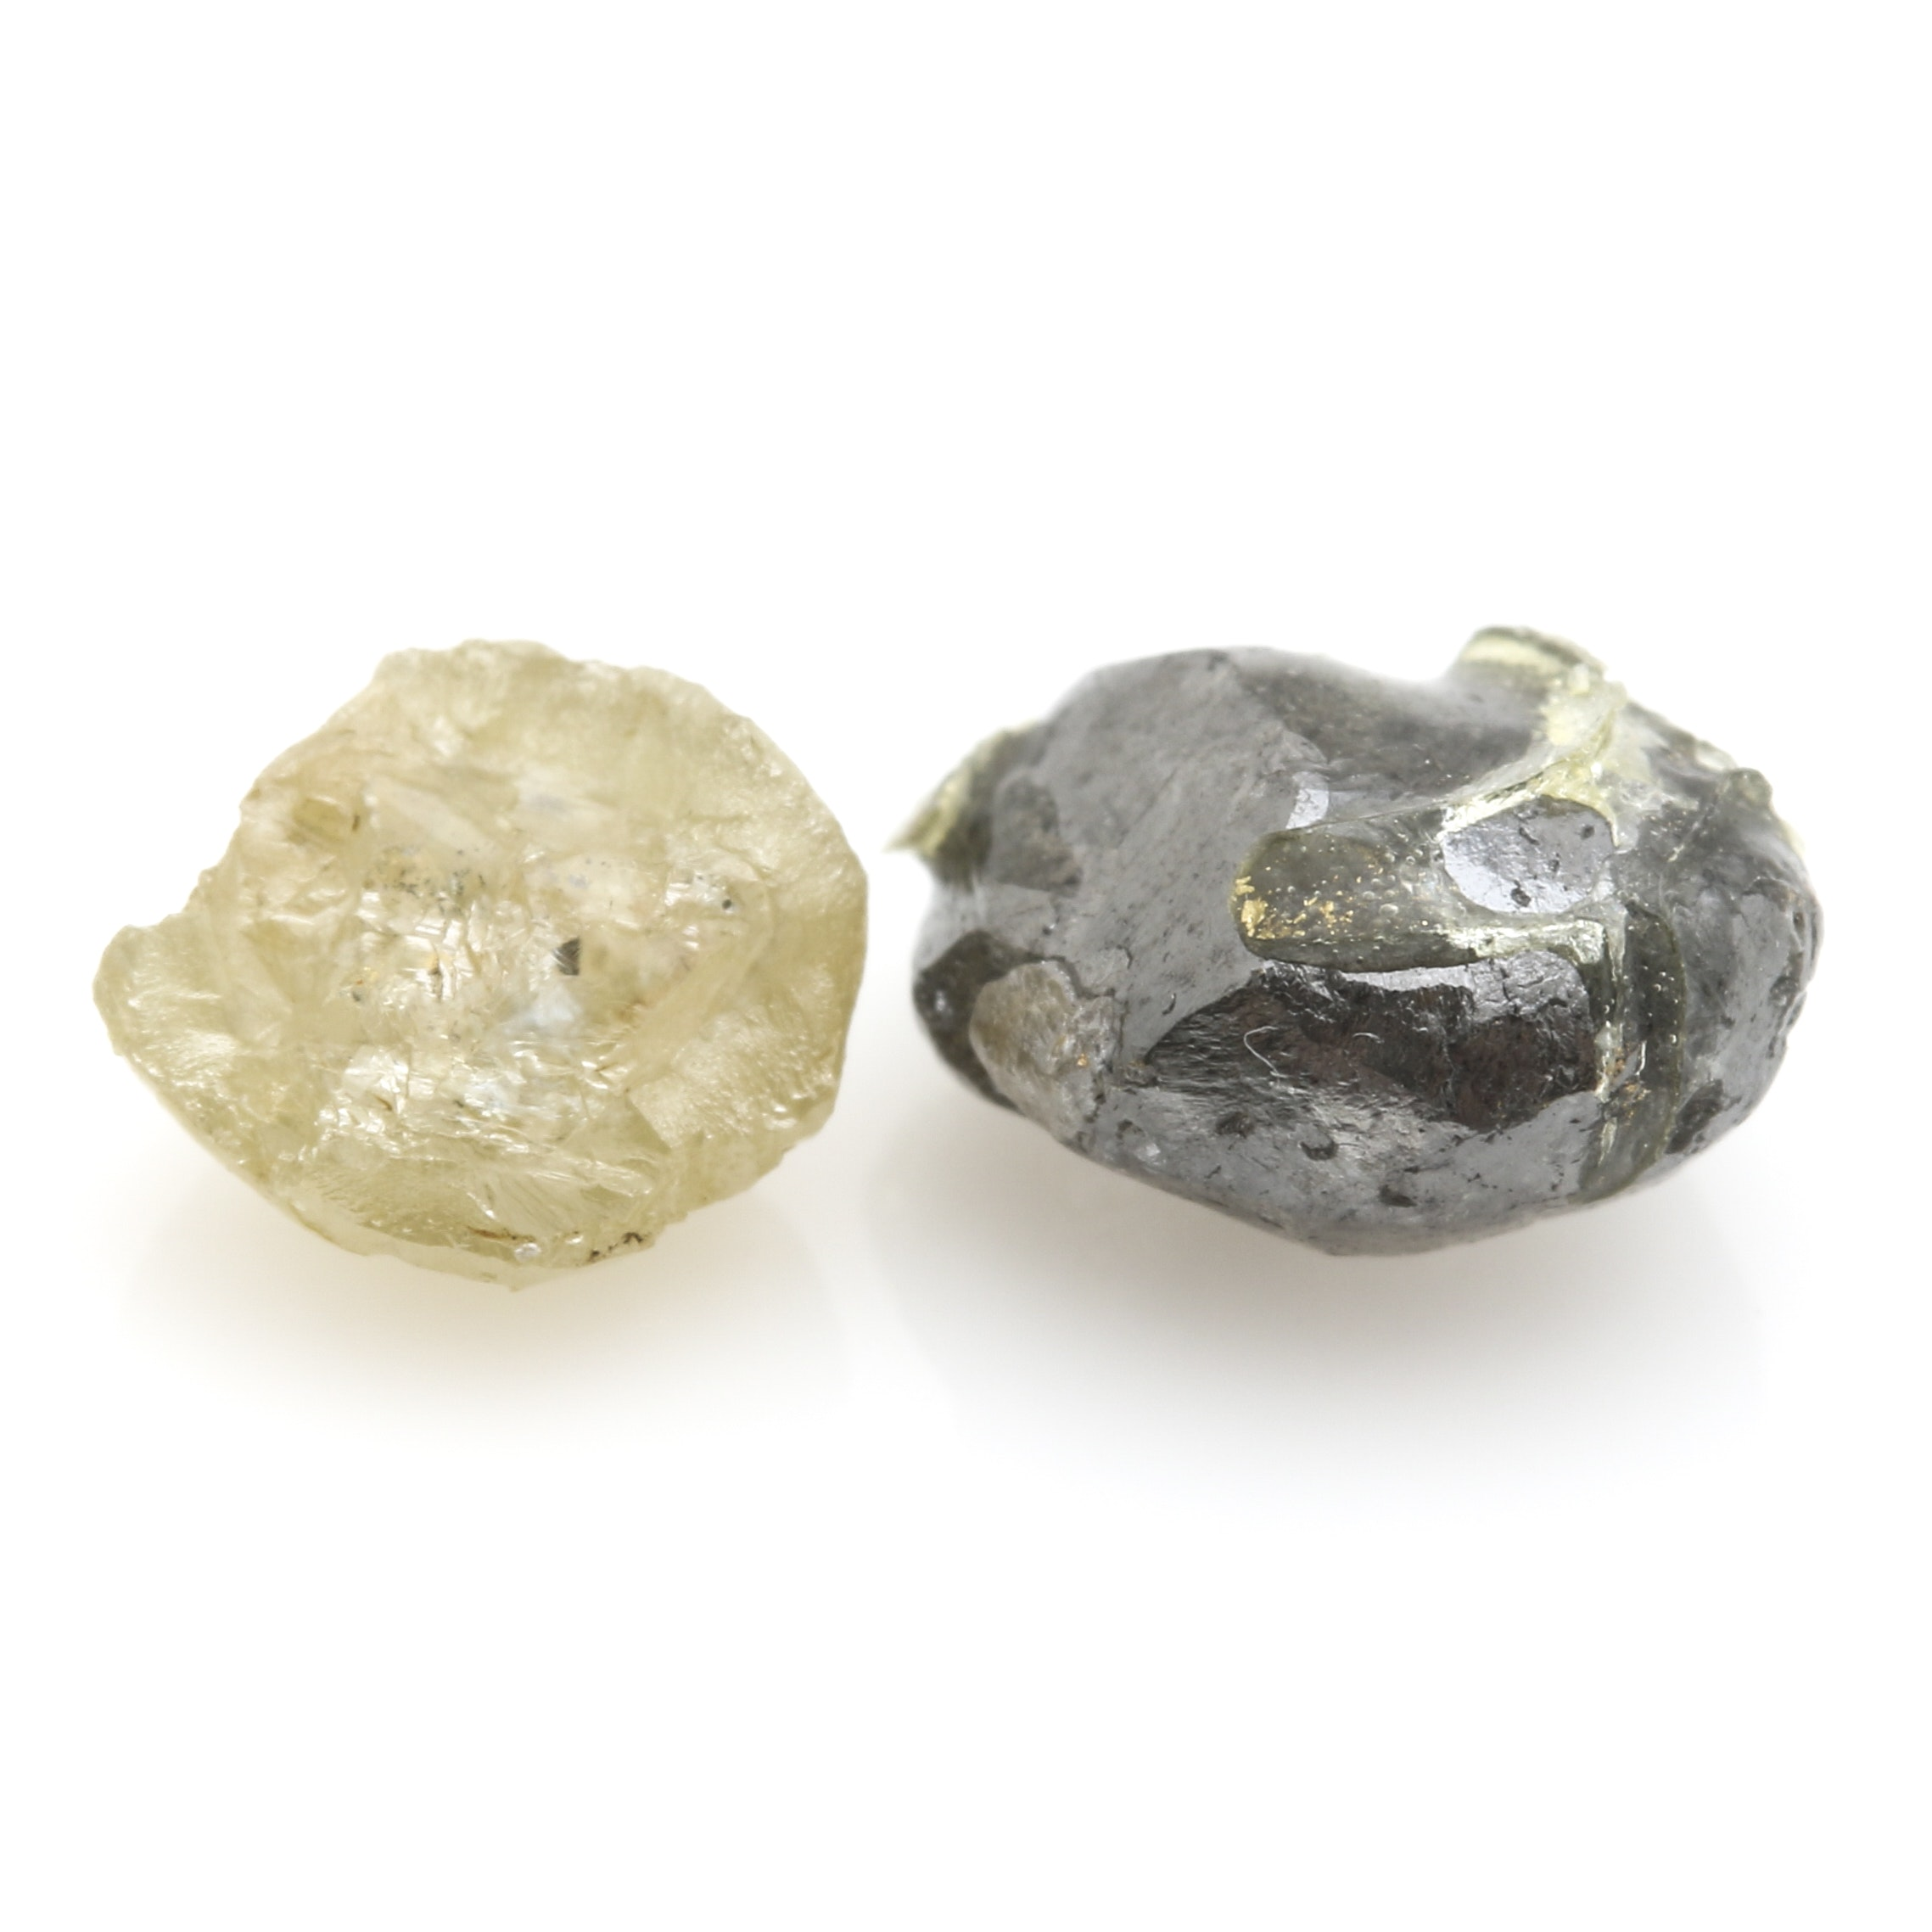 Loose 3.07 CTW Rough Diamonds